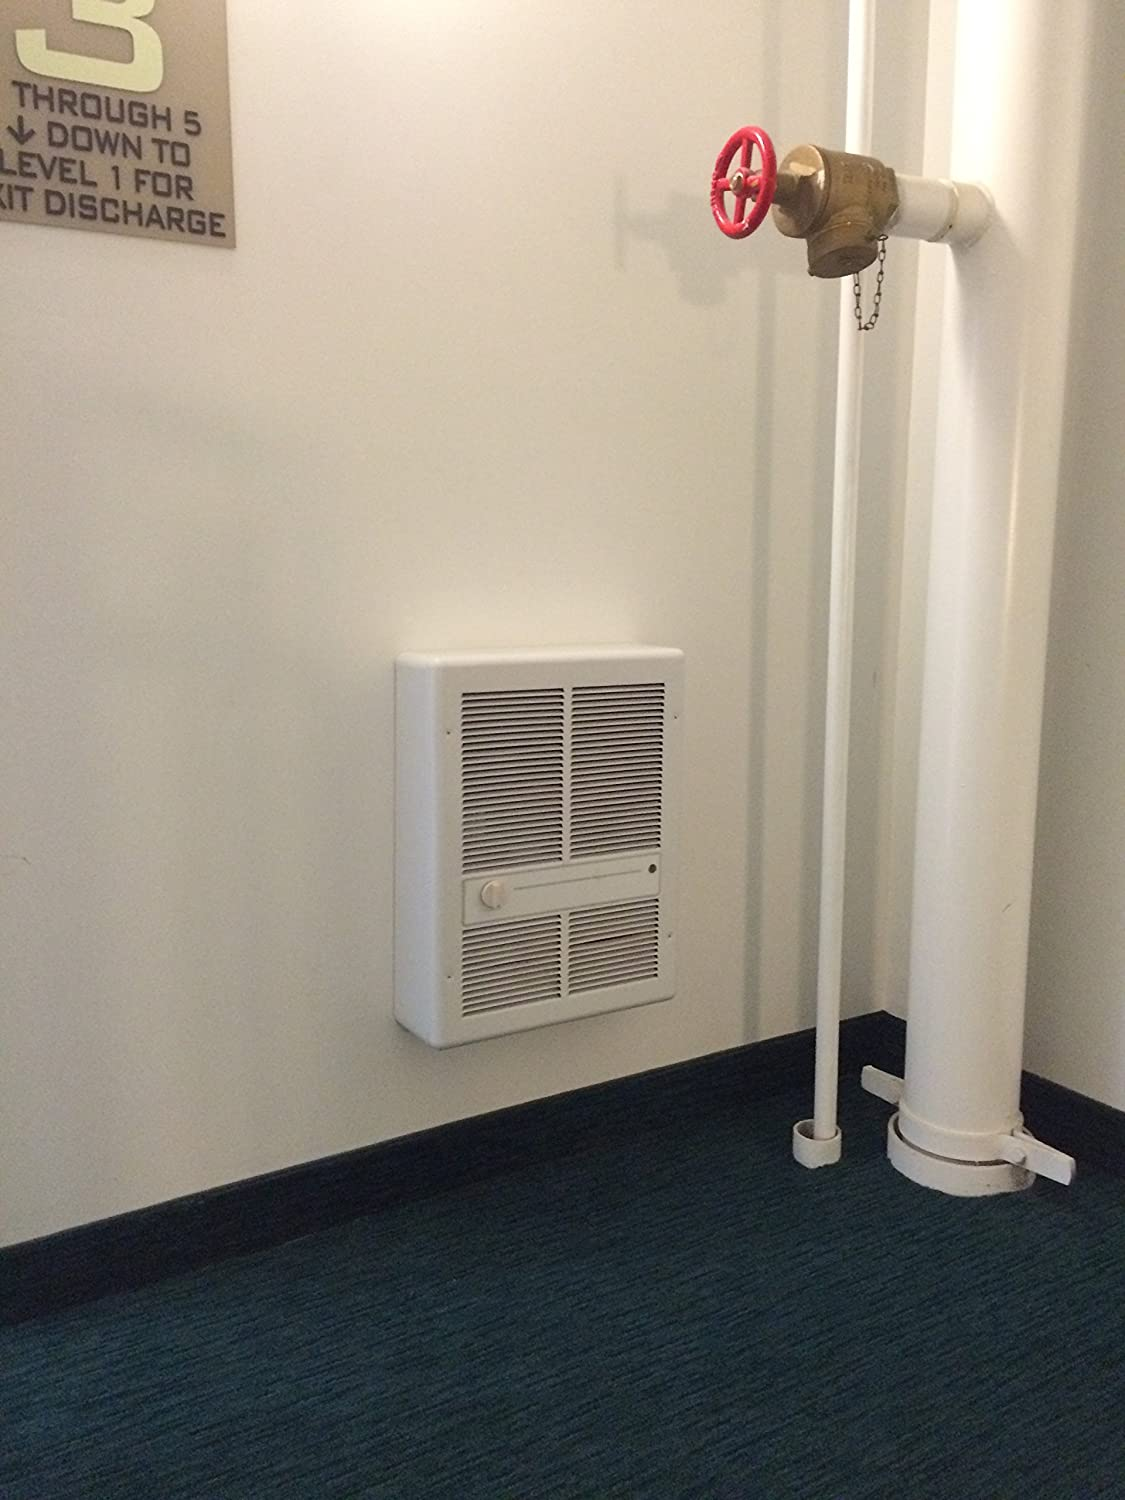 TPI H3317T2RP Series 3310 Fan Forced Wall Heater with in-Built Double Pole Thermostat 4800 W Ivory Without Summer Fan Switch 22lbs Weight